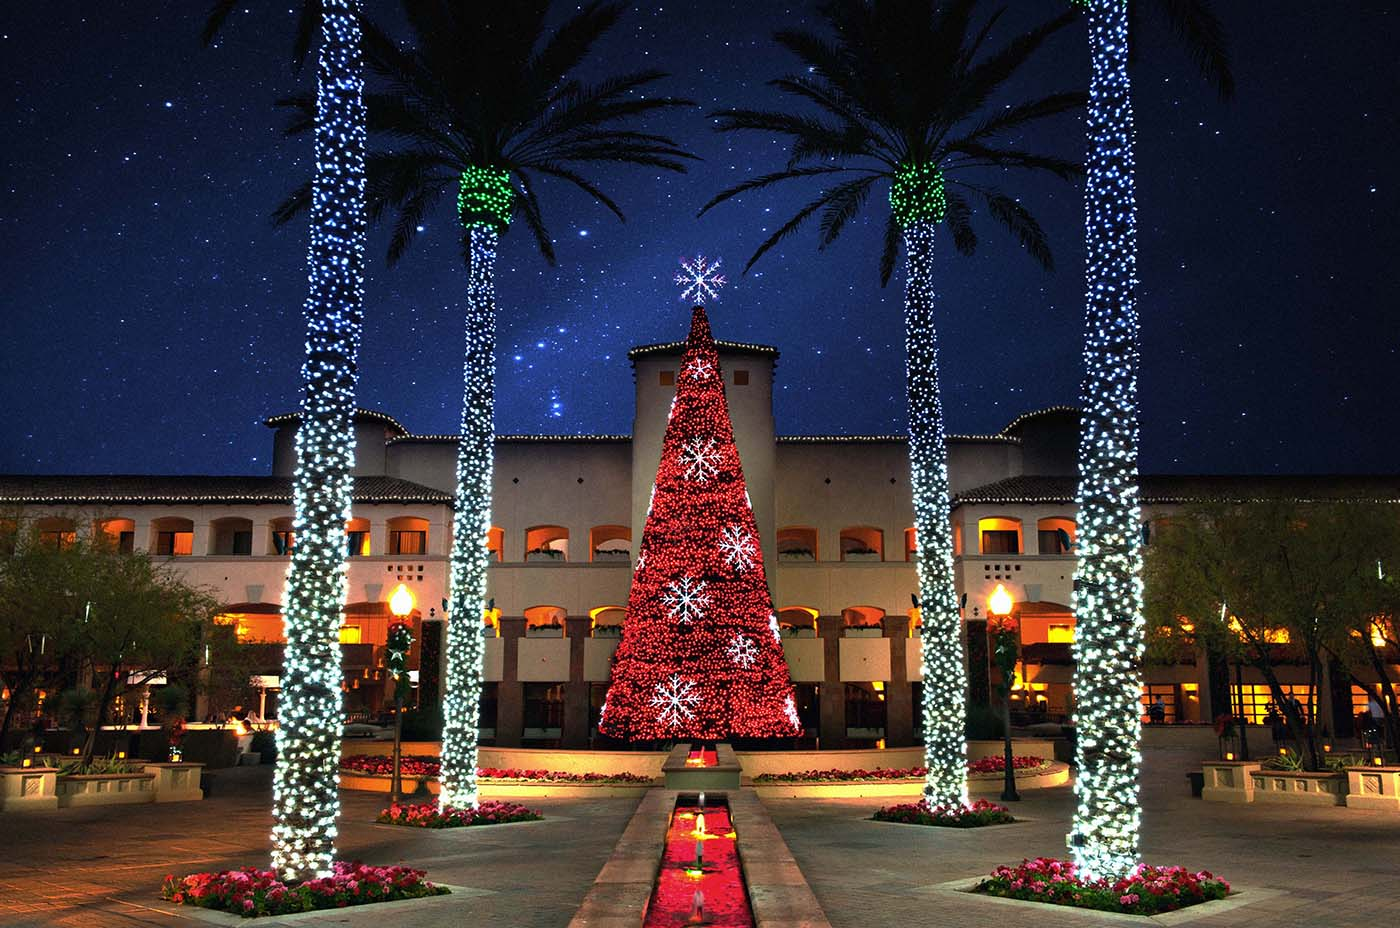 Christmas at the fairmont scottsdale princess all for for American christmas decorations